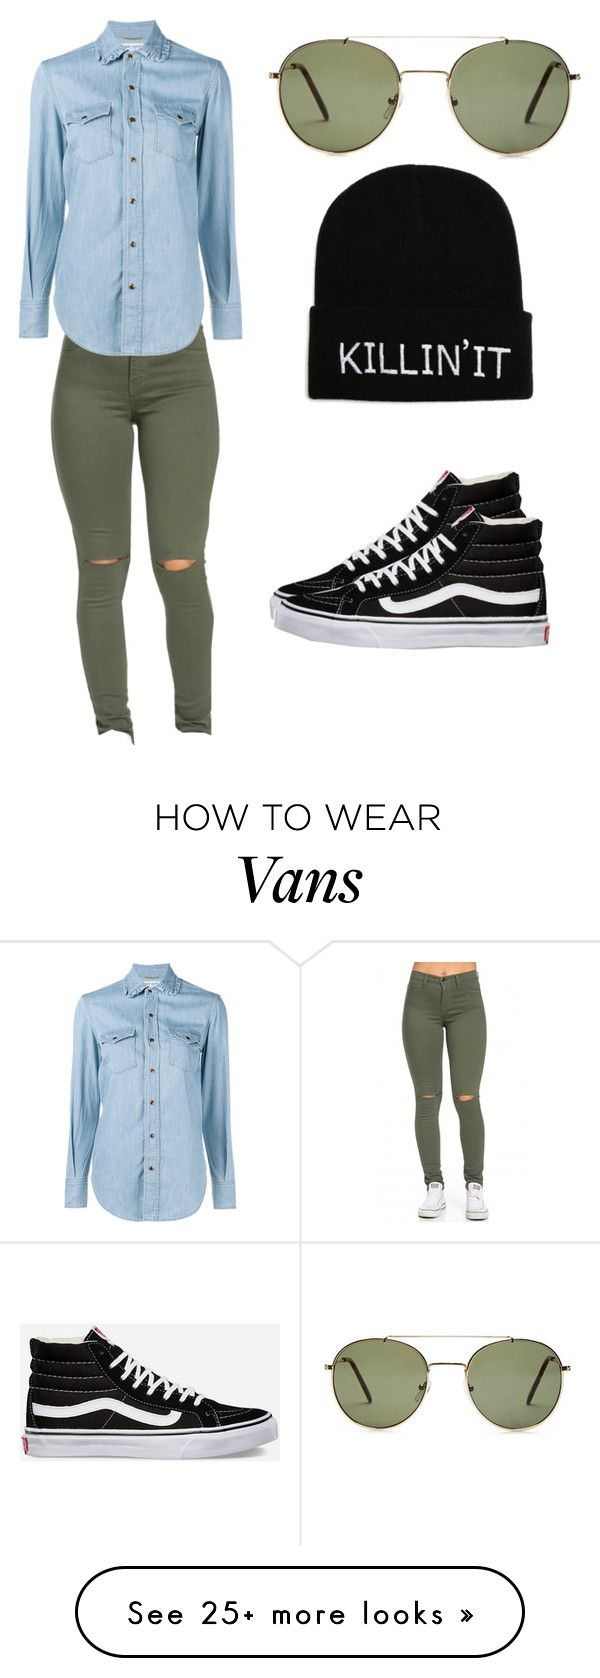 """""""Killin' It"""" by sek2003 on Polyvore featuring Forever 21, Yves Saint Laurent and Vans"""